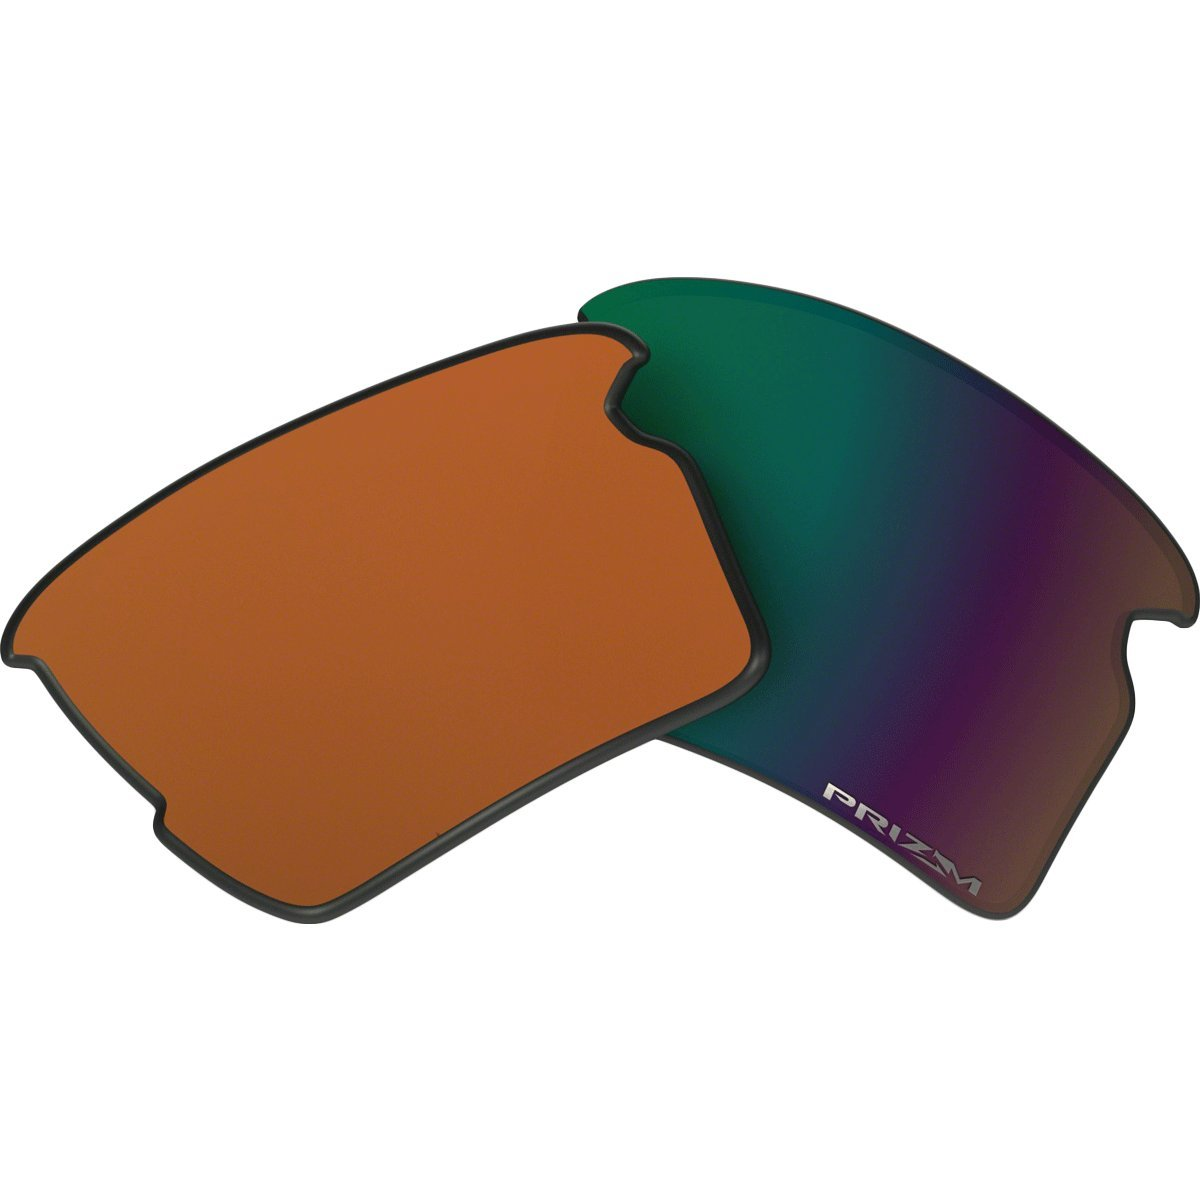 Oakley Flak 2.0 XL Adult Replacement Lens Sunglass Accessories - Prizm Shallow Water Polarized / One Size by Oakley (Image #2)